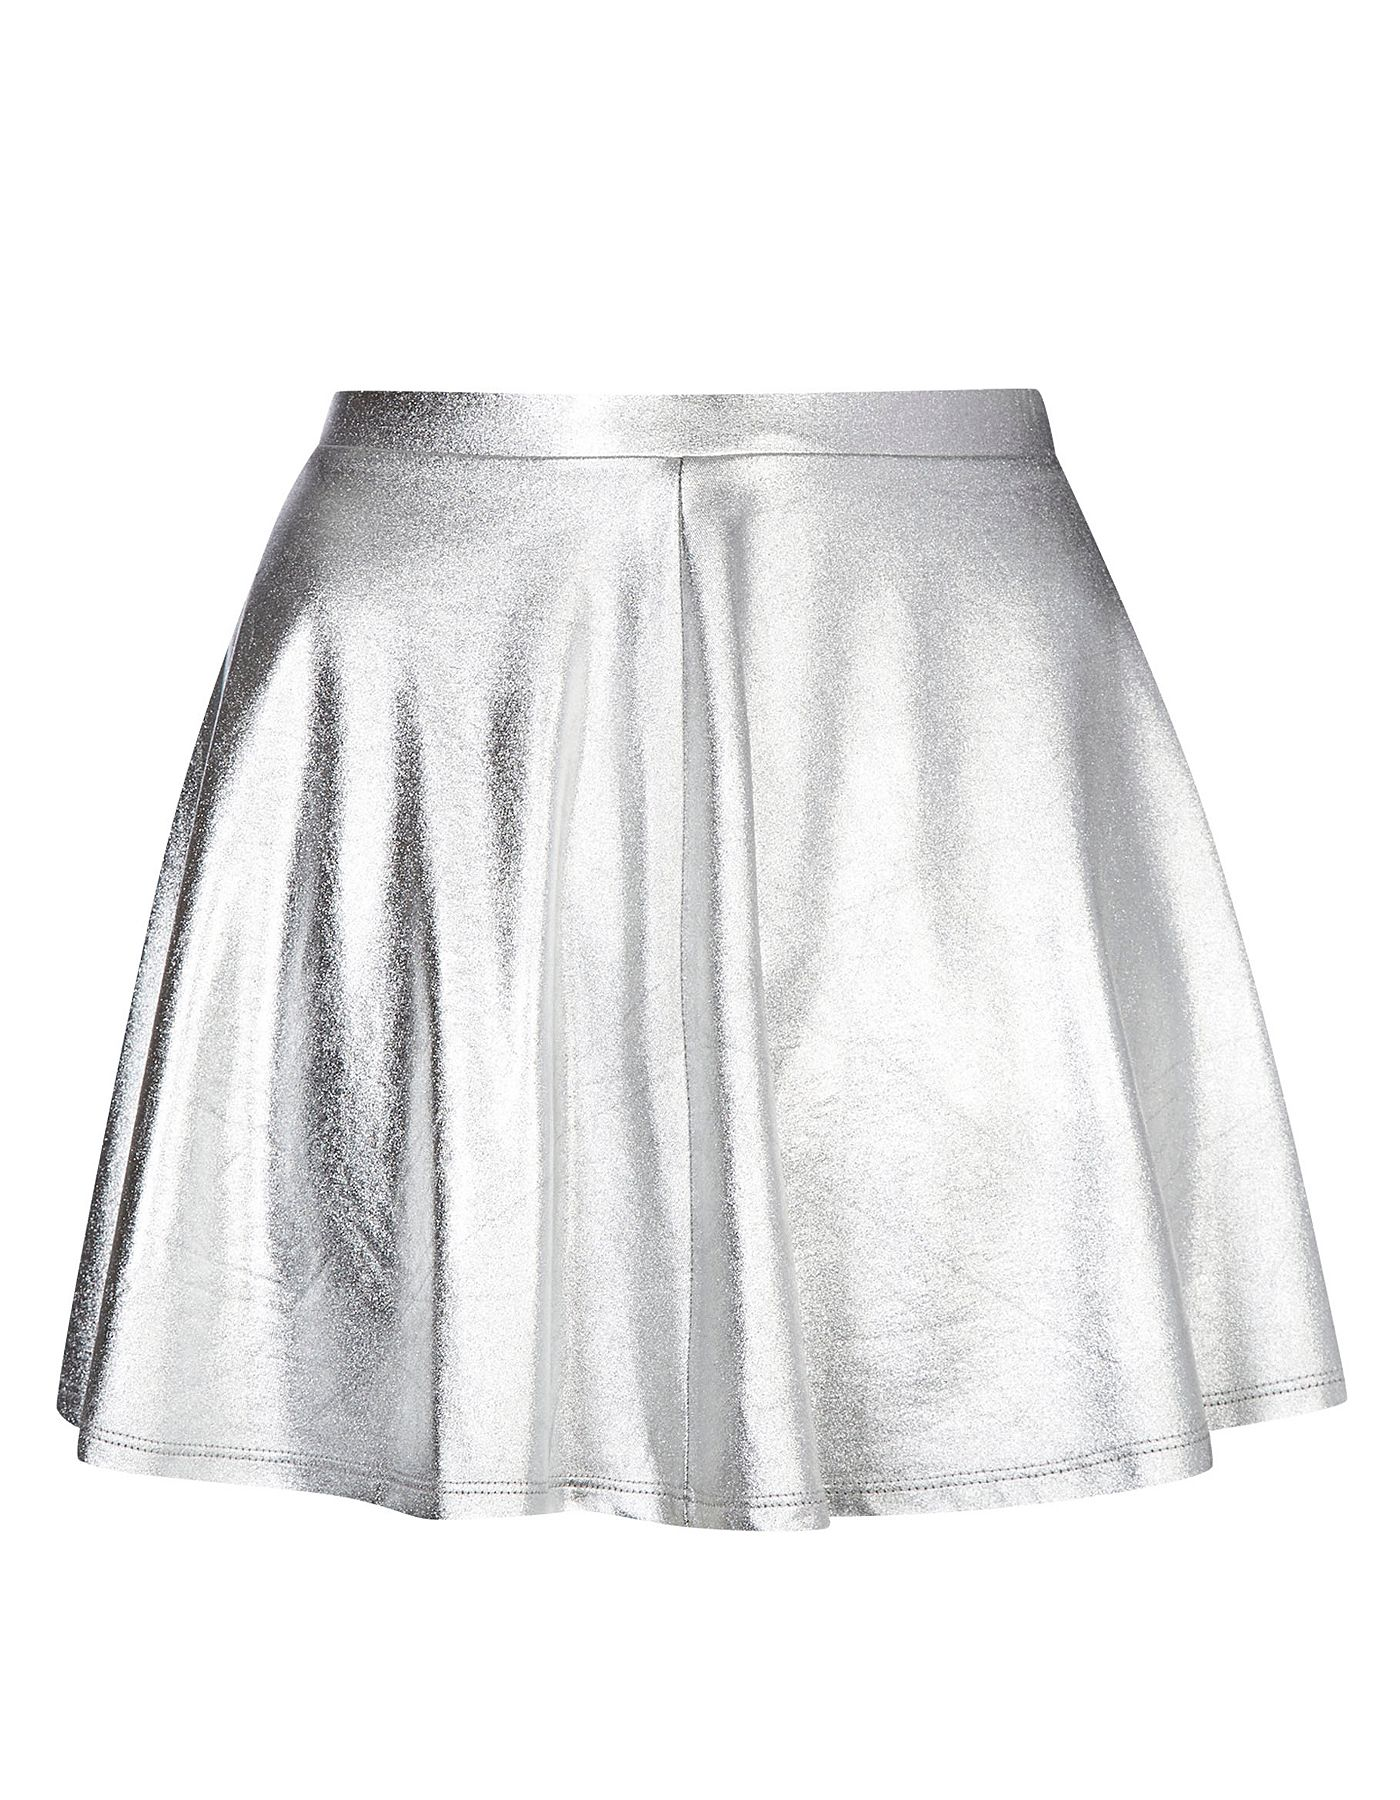 save off newest style fashionable patterns G21 Talent Metallic Skater Skirt | Women | George at ASDA ...